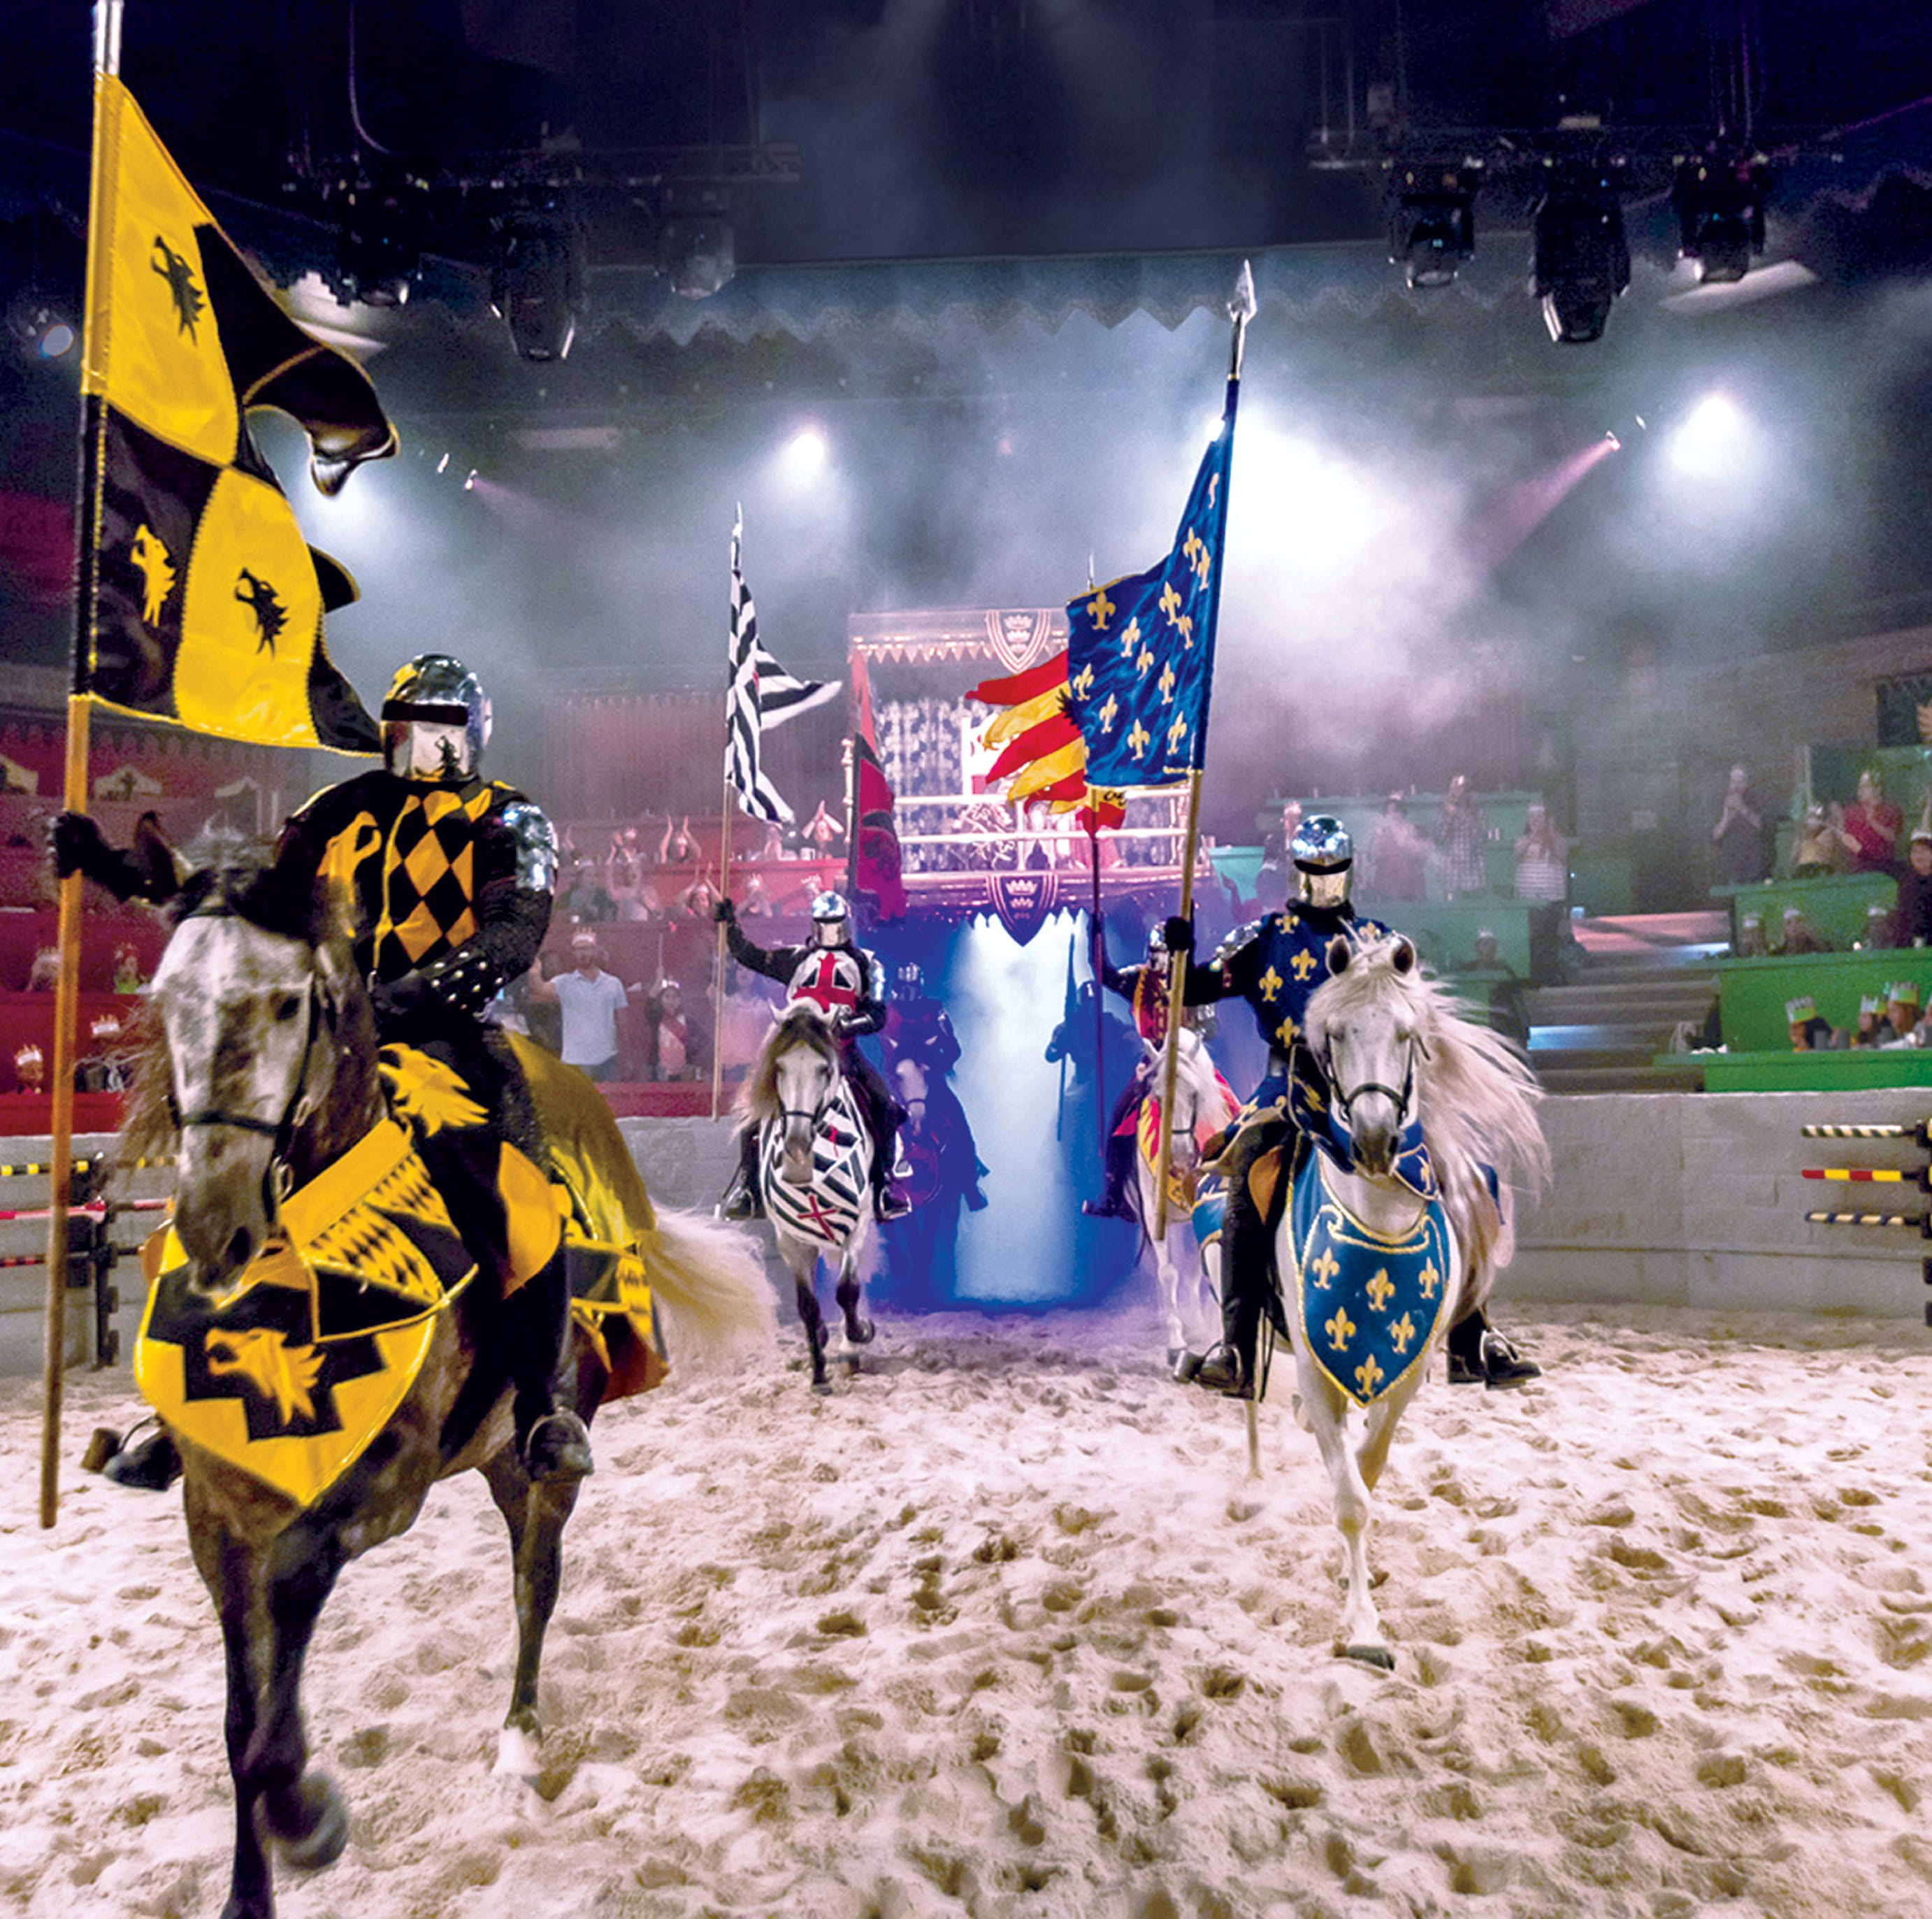 Knight fights are coming: Medieval Times Phoenix location opens this summer